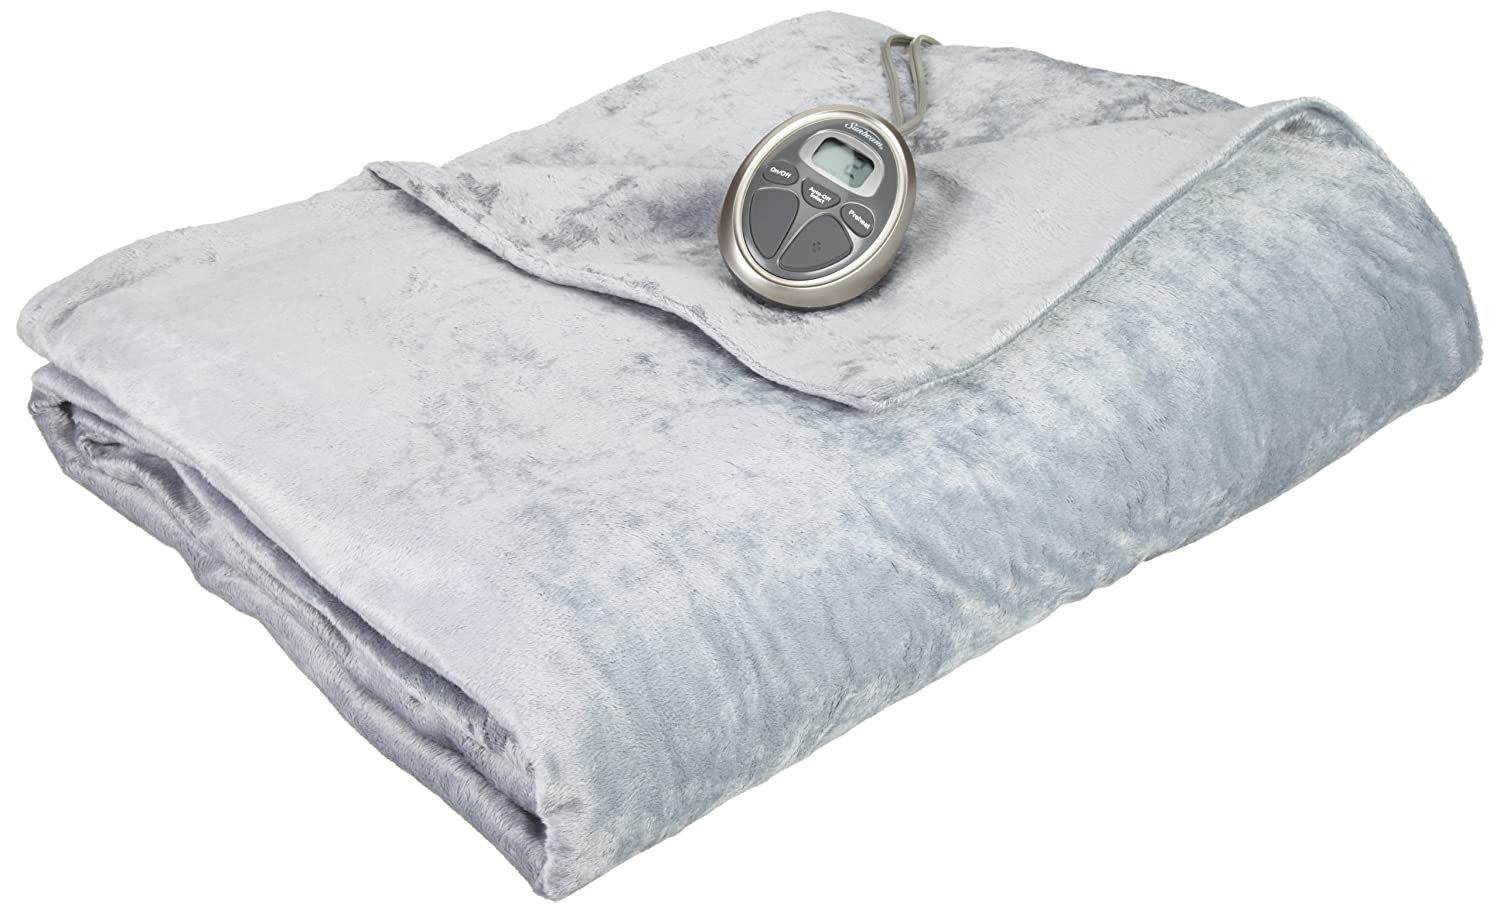 Amazon.com: Sunbeam RoyalMink Heated Blanket, Twin, Breeze ...